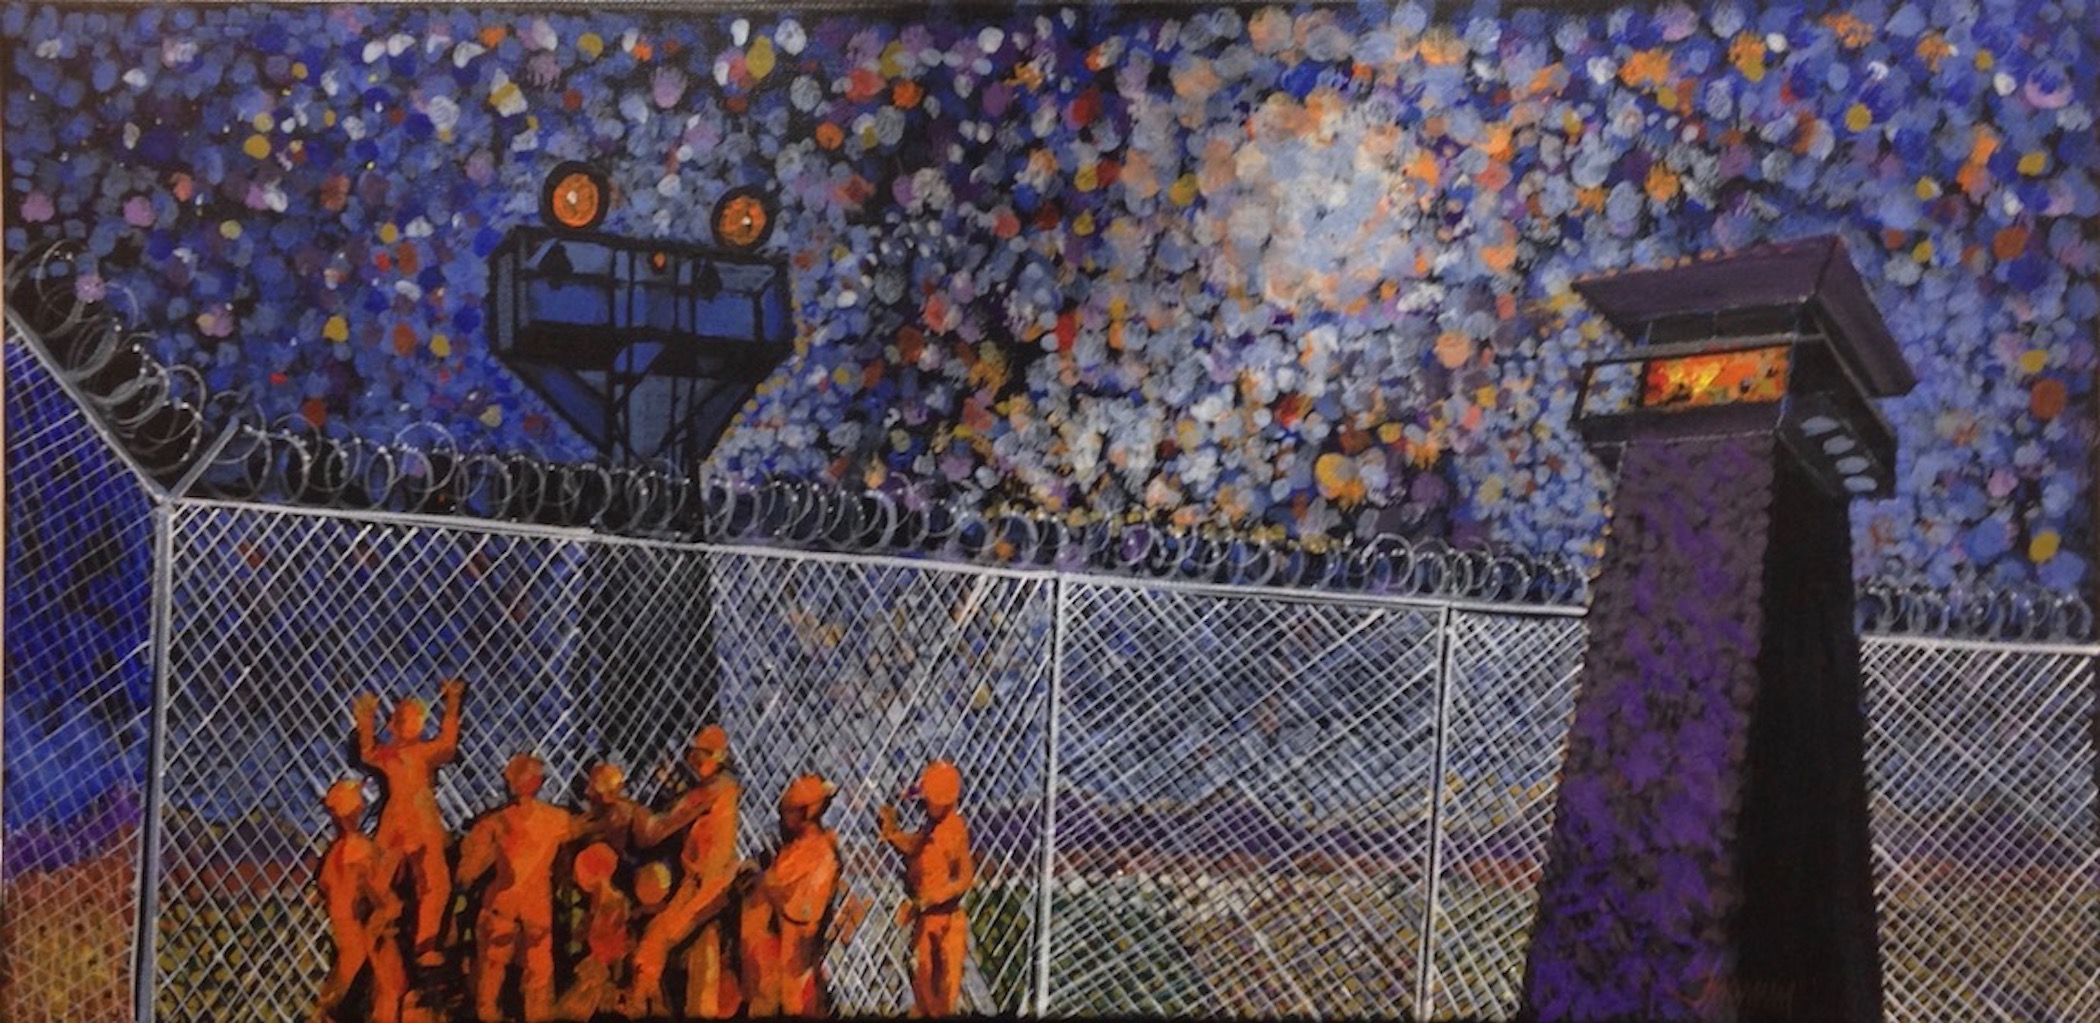 "This painting concerns the privatization of our prison system and its inherent corruption. In Thamm's view, there are many on the inside that shouldn't be there and many on the outside who should be inside.  Title: Inside Looking Out  size: 12"" x 24""  Medium: Oil  Year of creation: 2015  Price $1,500  For sales inquiries, please contact the artist directly at  www.jfthammgallery.com"